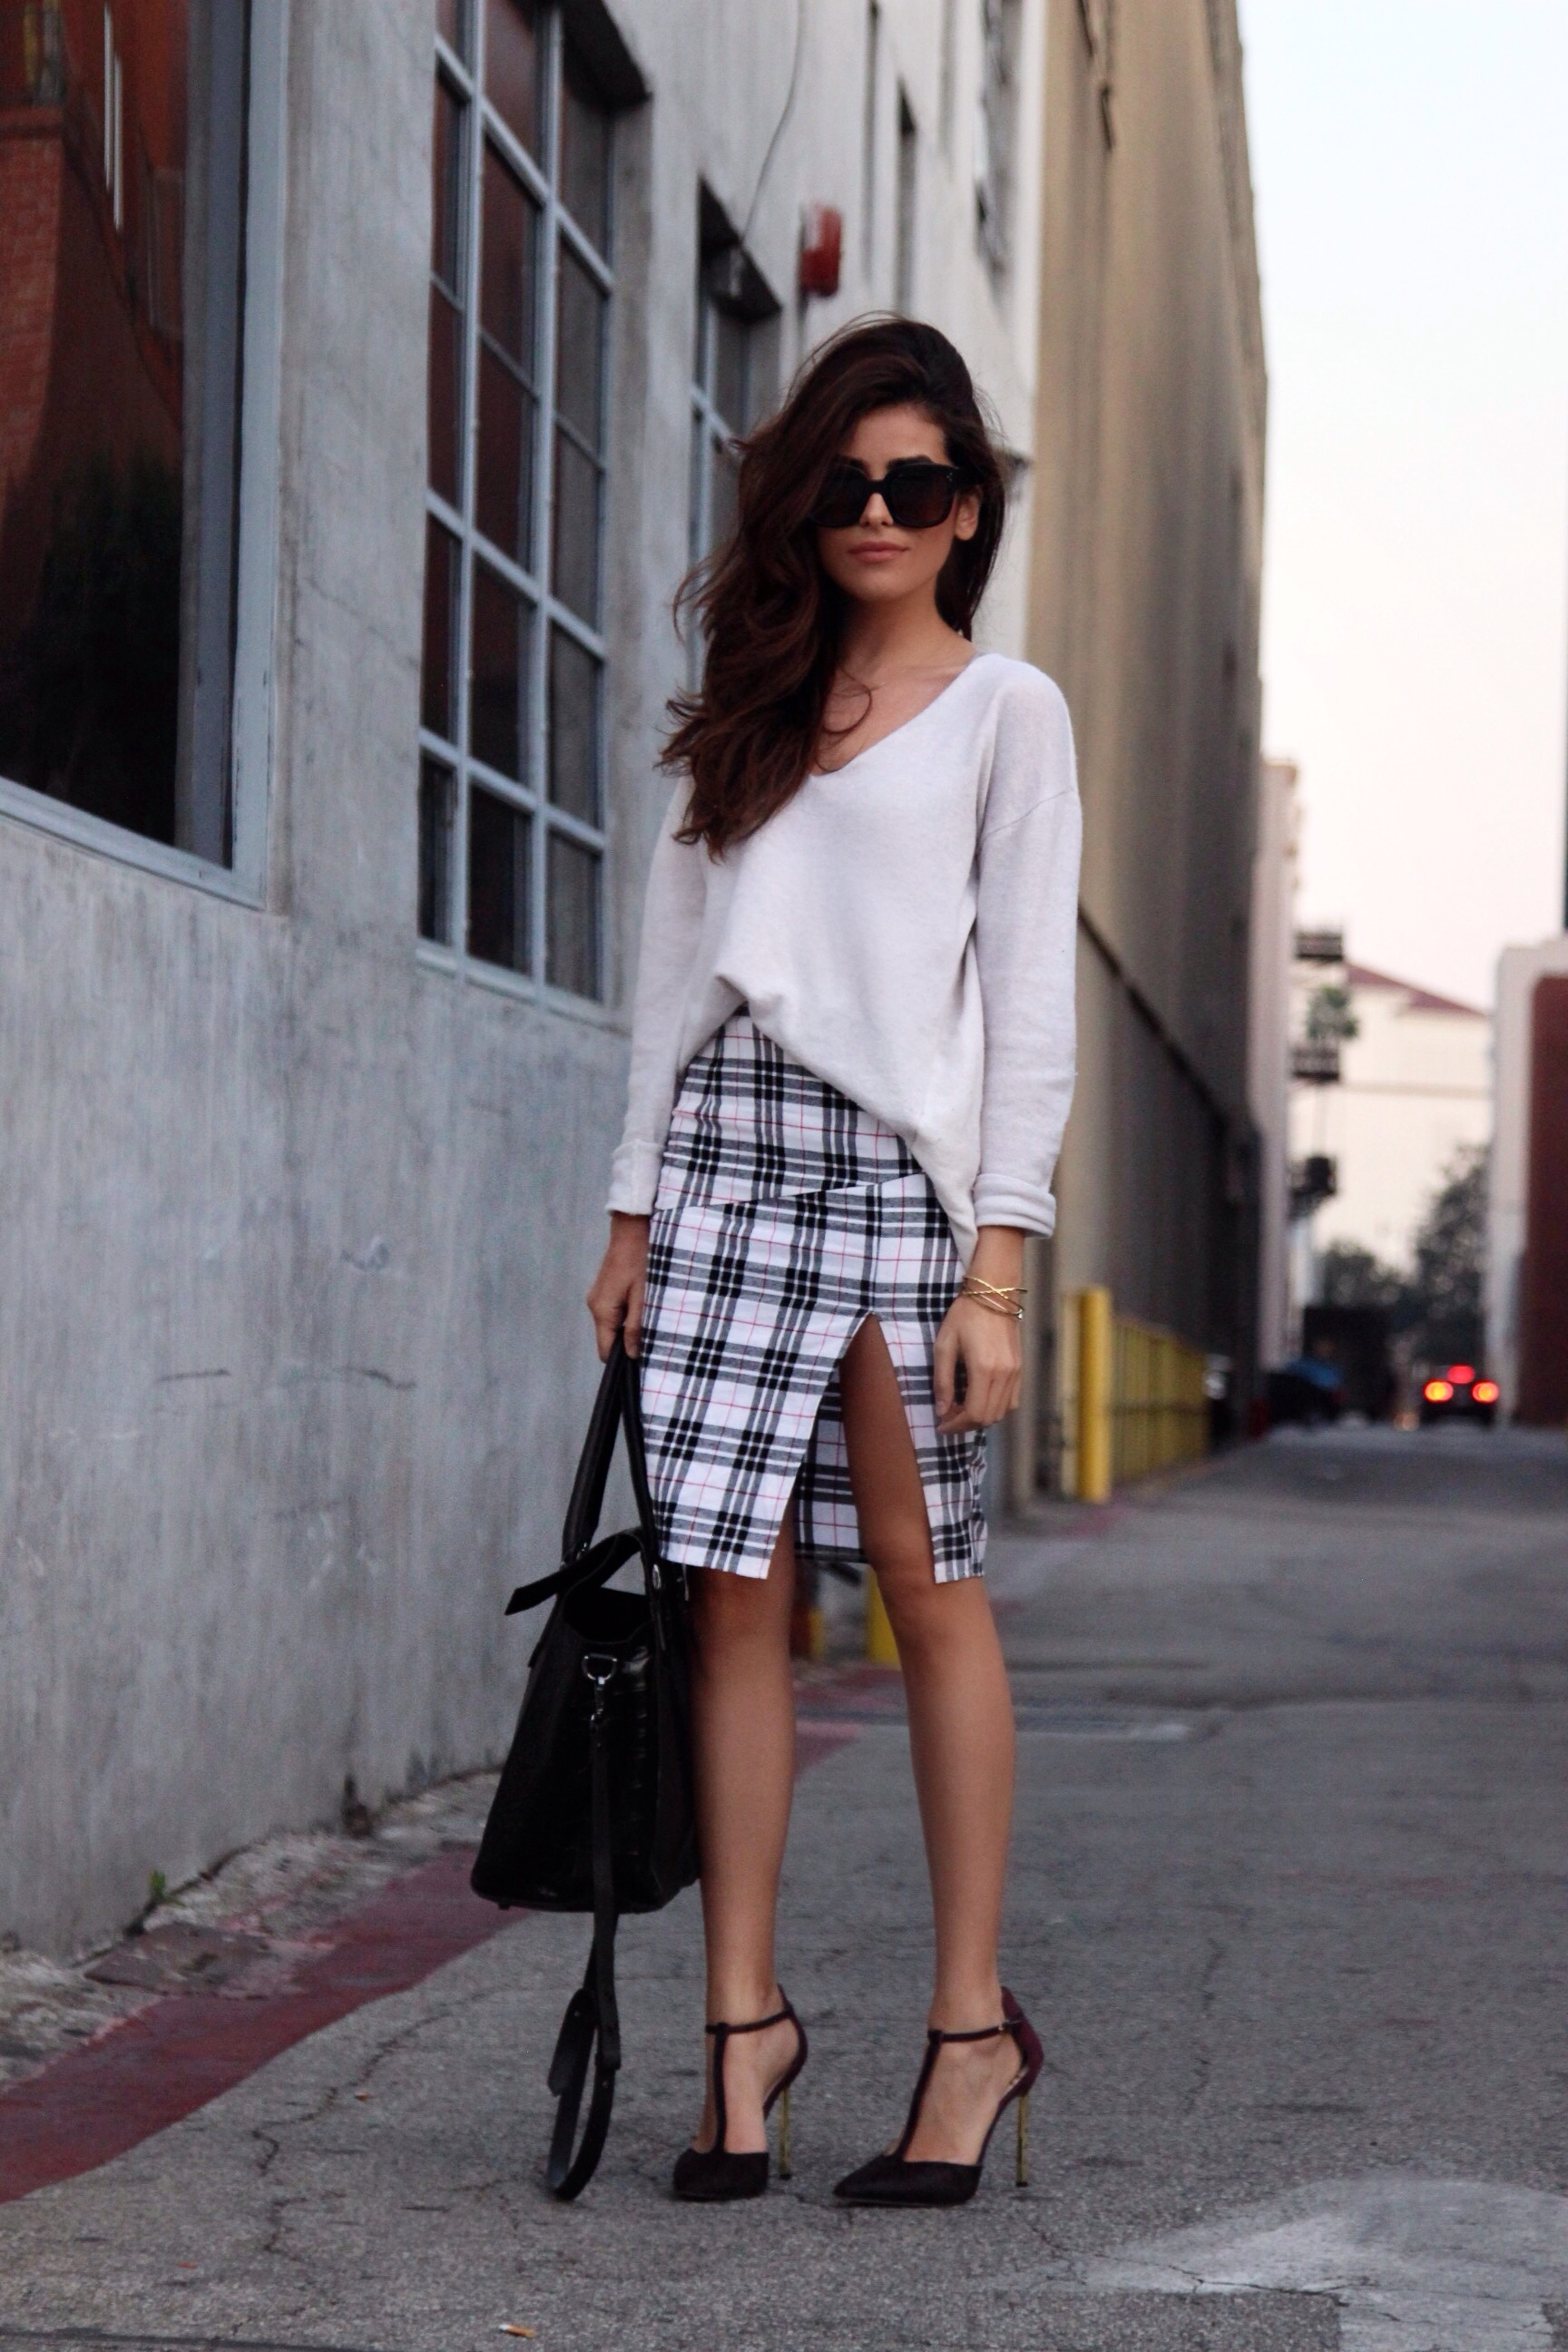 Sazan Barzani is taking sexy to new heights with this tartan pencil skirt and high thigh slit! With a t-strap stiletto and an oversided (thin) sweater, you too can turn an otherwise relaxed look into a eyecatching outfit! Skirt: Shop Luna B., Top: Margaret O'Leary, Shoes: Sam Edelman, Purse: Treesje, Sunglasses: Celine, Bracelet: Gorjana